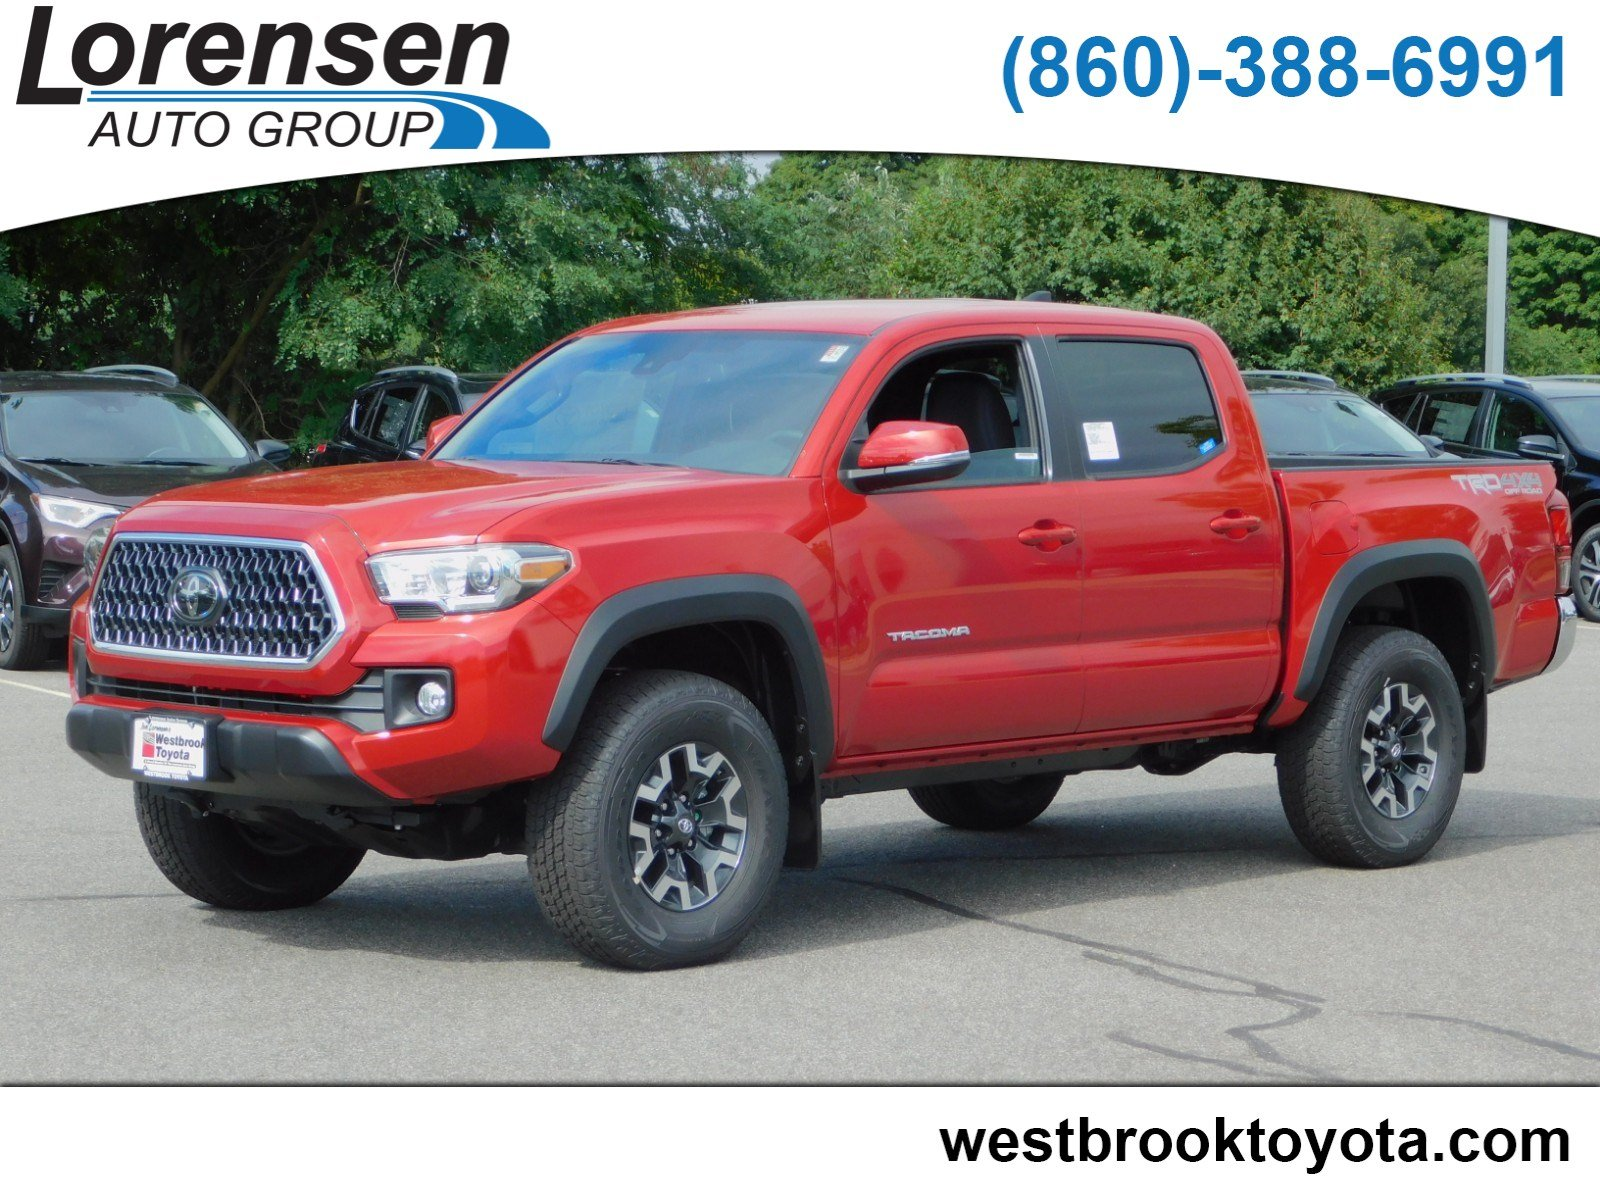 New 2018 Toyota Tacoma Sr Double Cab In Westbrook 18772 Long Bed Fuel Hostage Wheels Wheel Drive